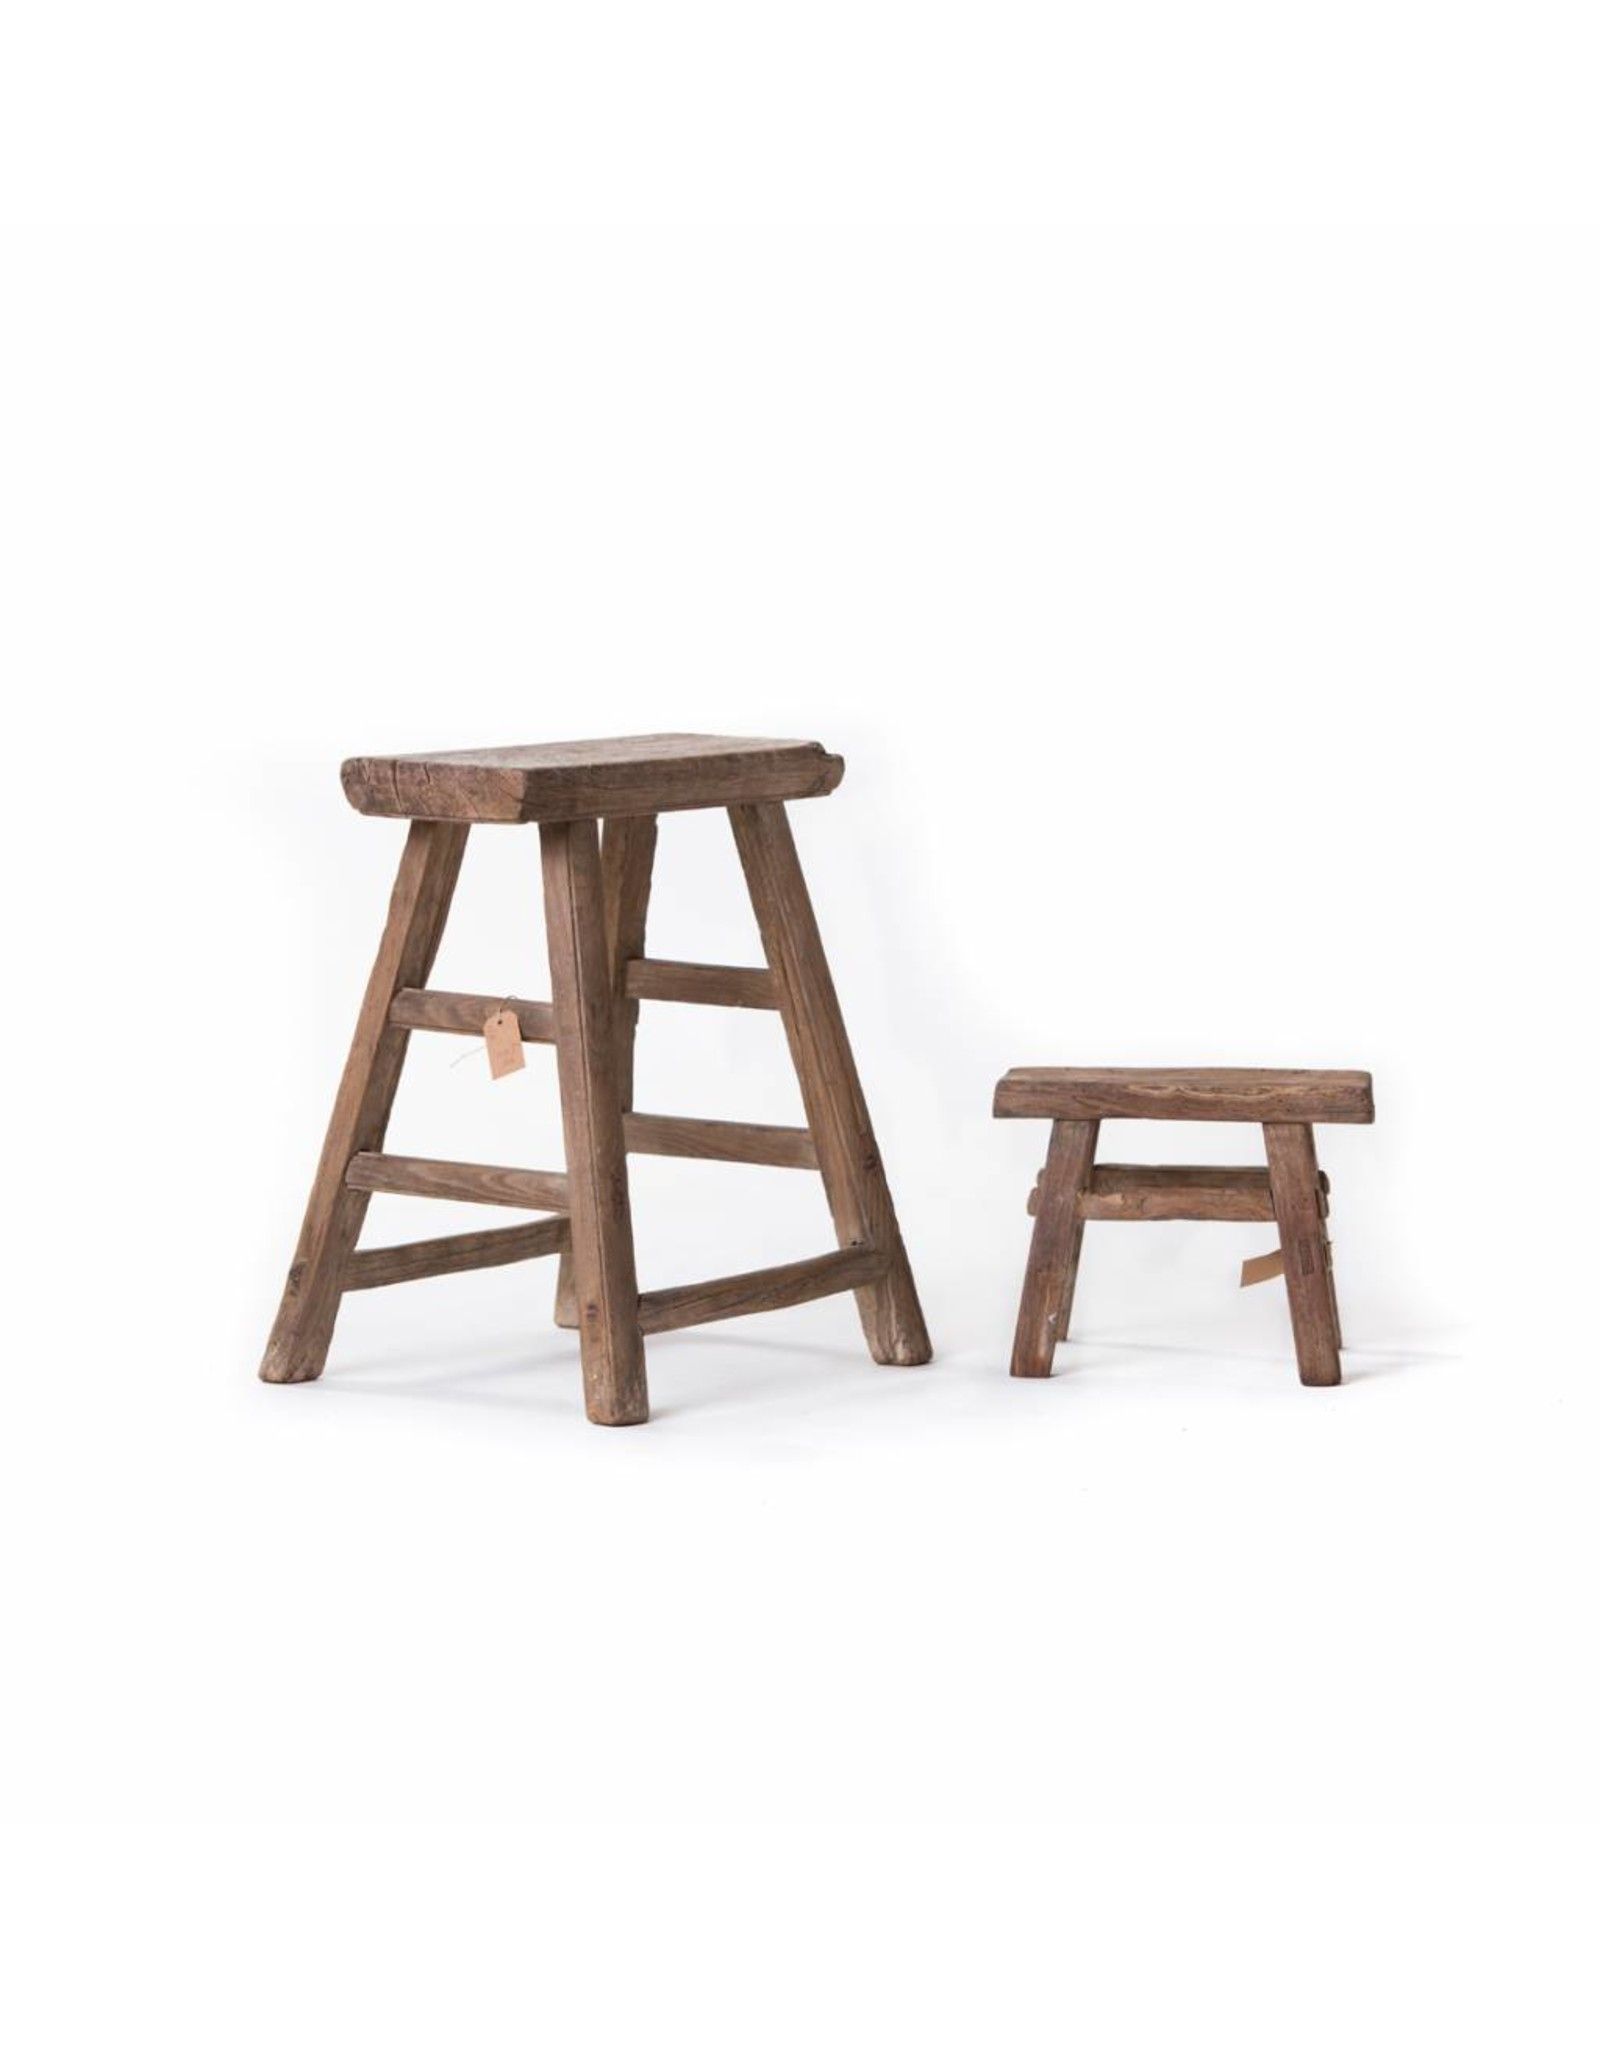 Beautiful set of old wooden stool and small workman's stool(s).